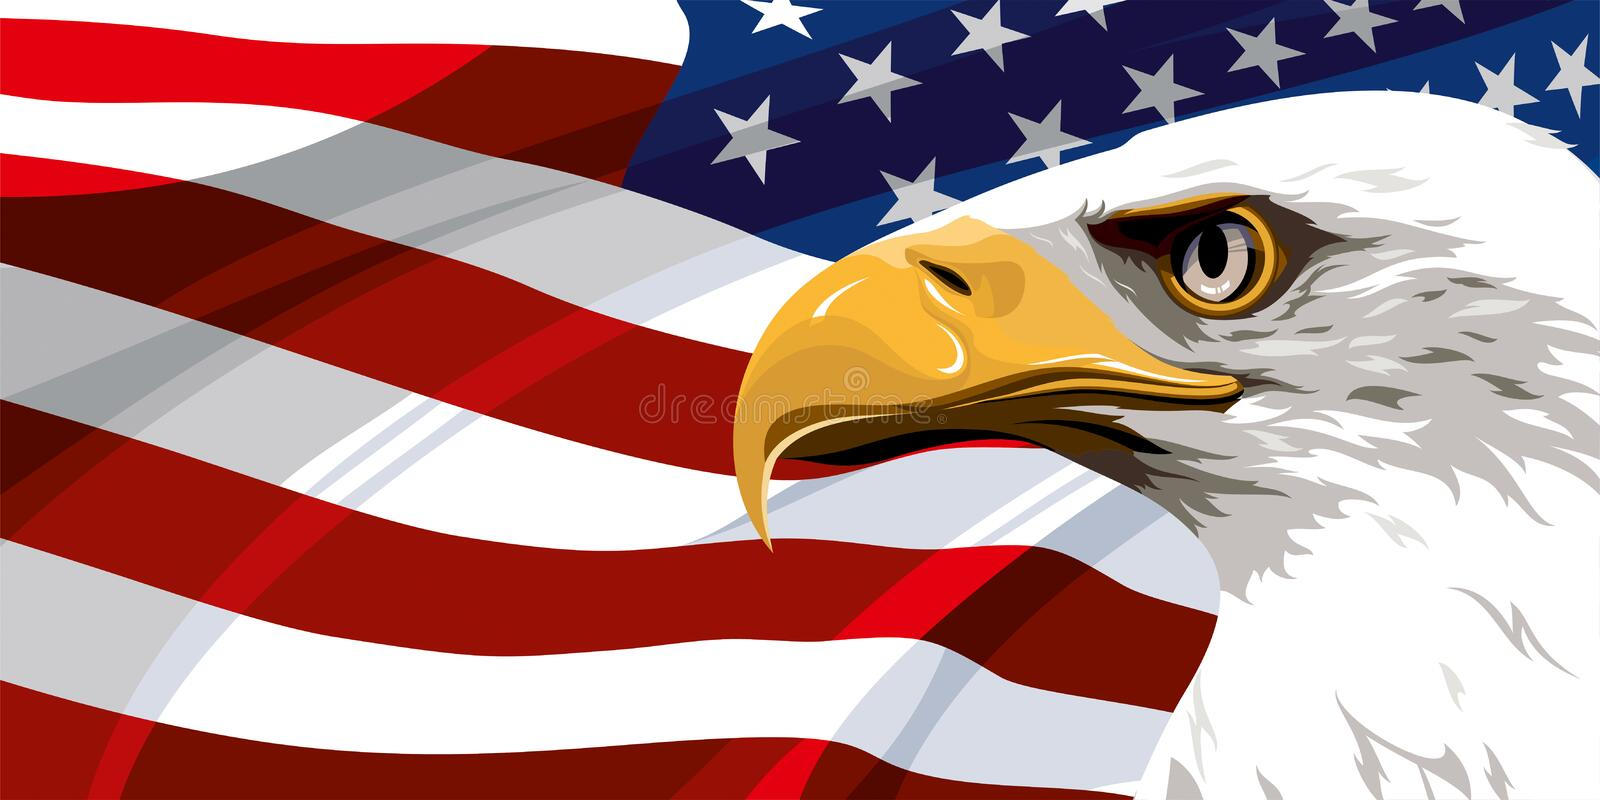 The National Symbol Of The Usa Stock Vector Illustration Of Symbol